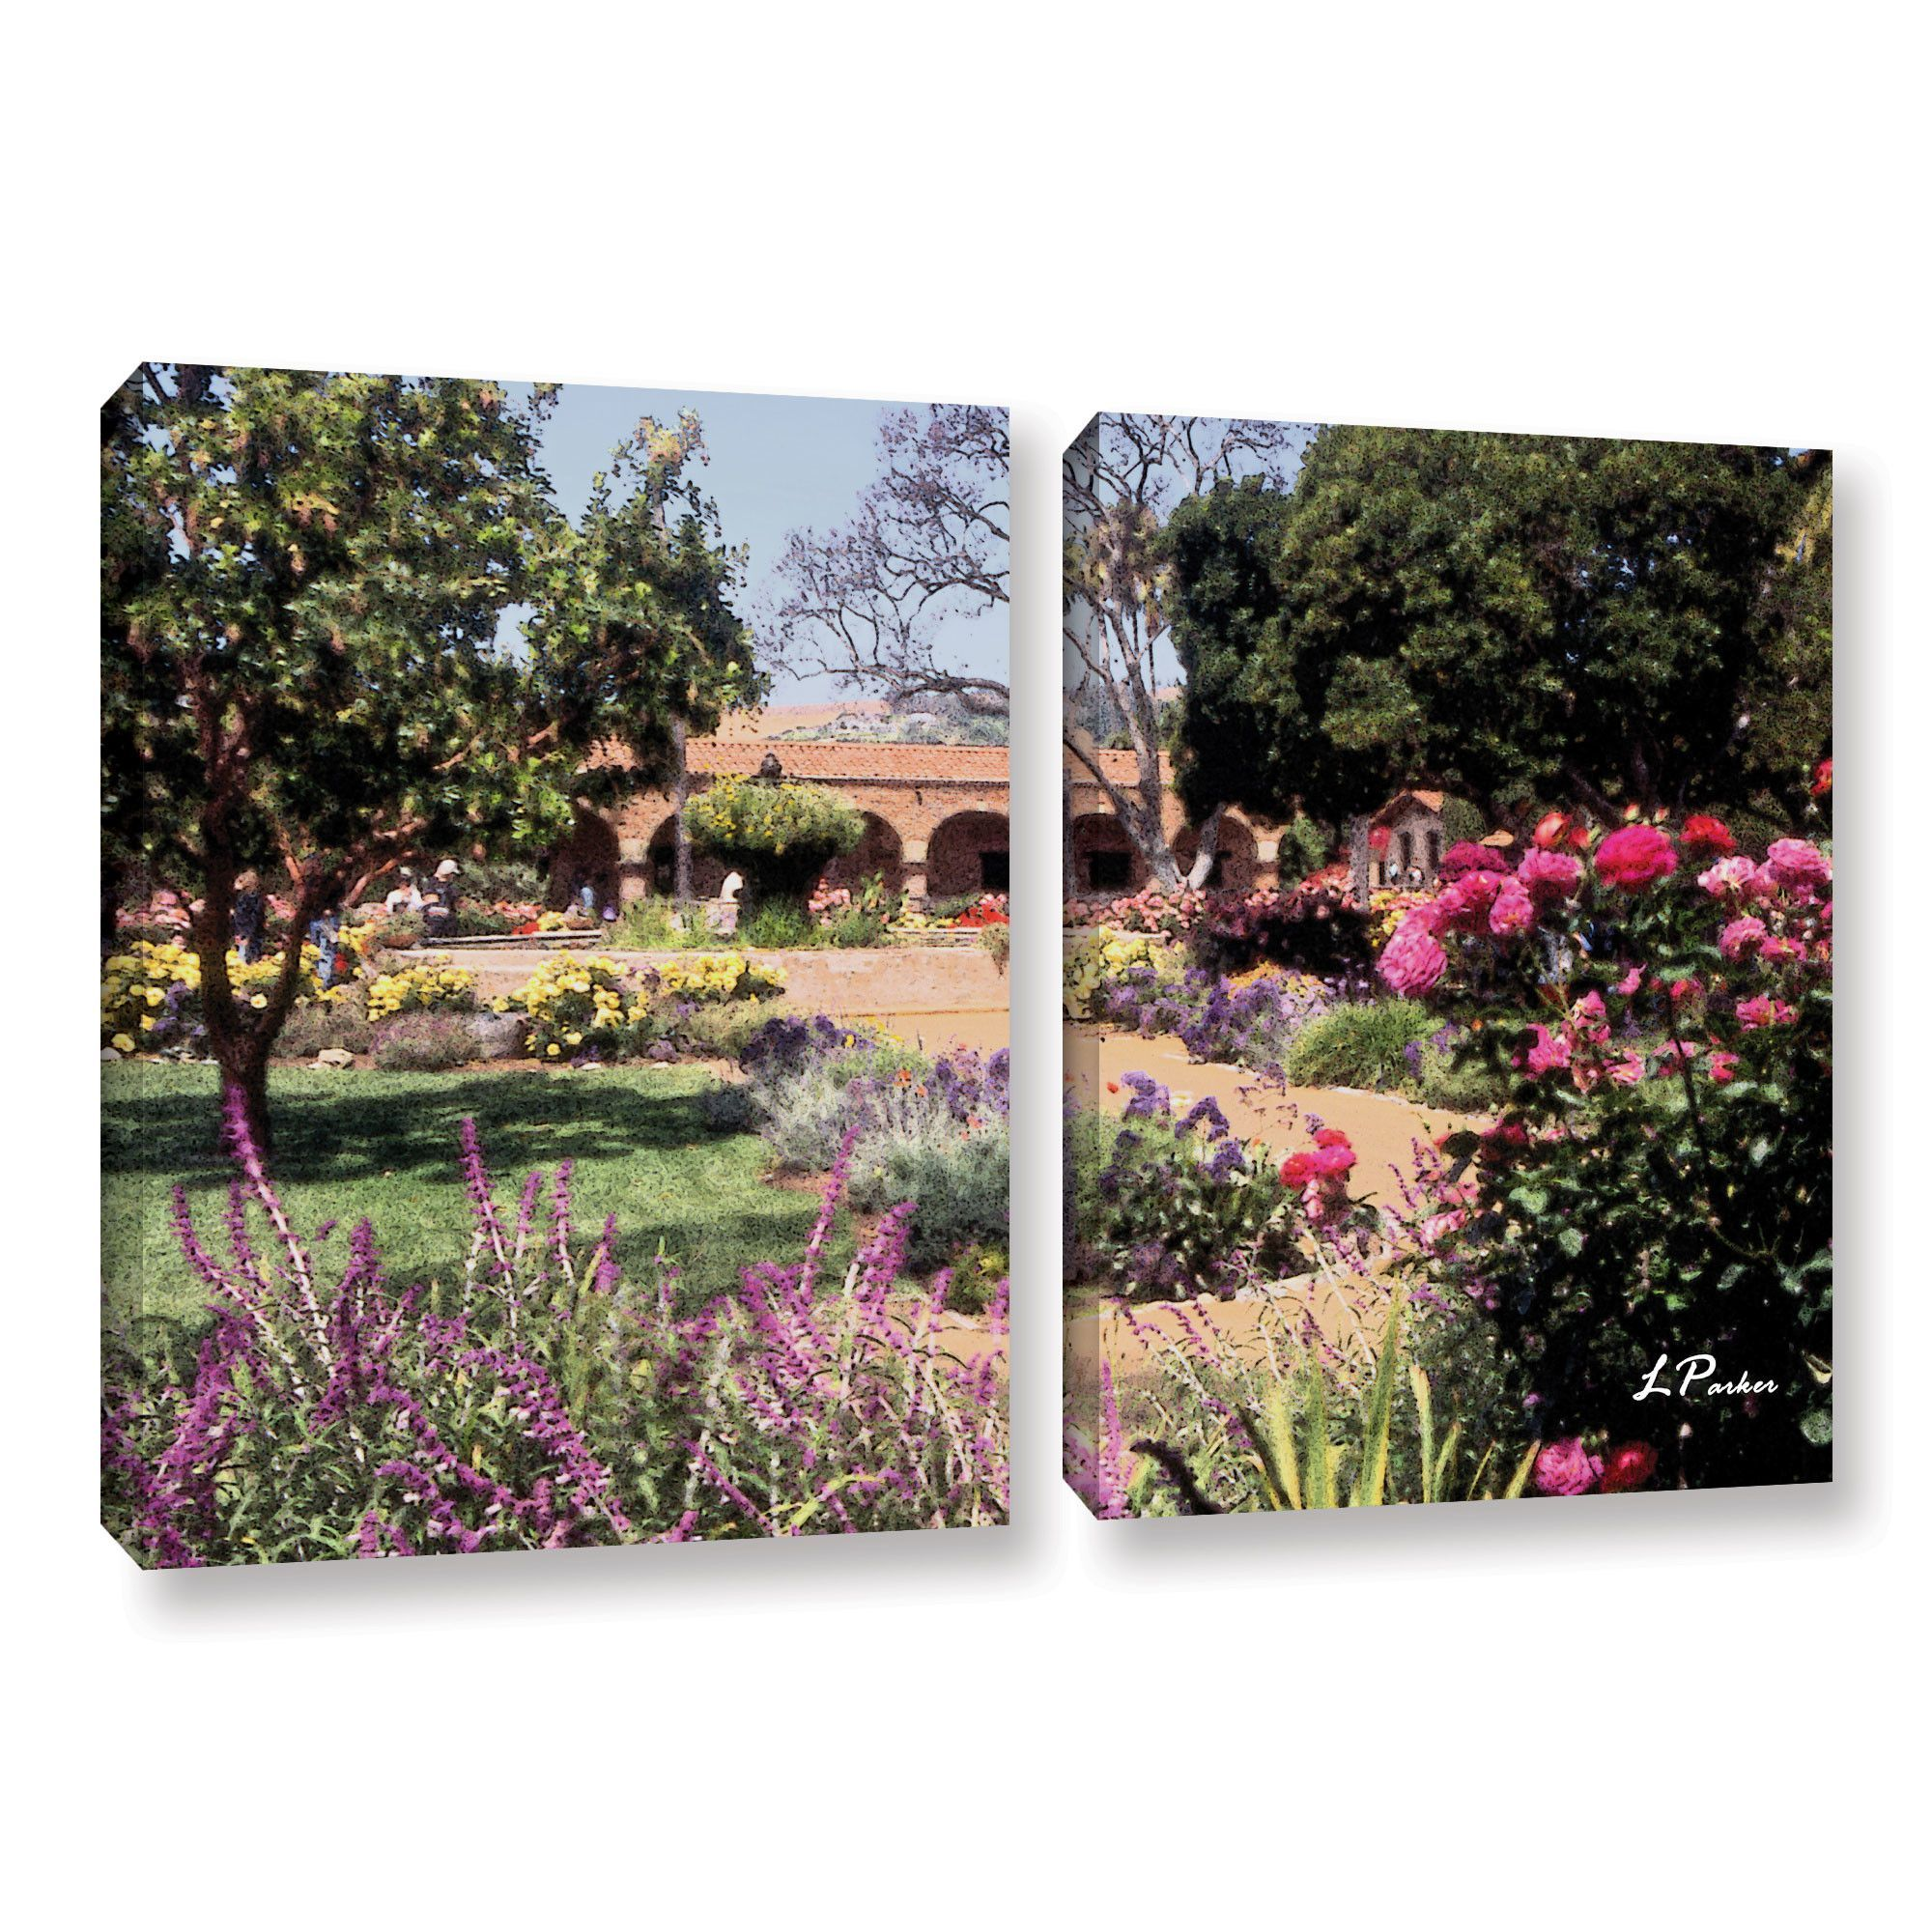 Mission San Juan Capistrano Ii by Linda Parker 2 Piece Photographic Print on Gallery Wrapped Canvas Set